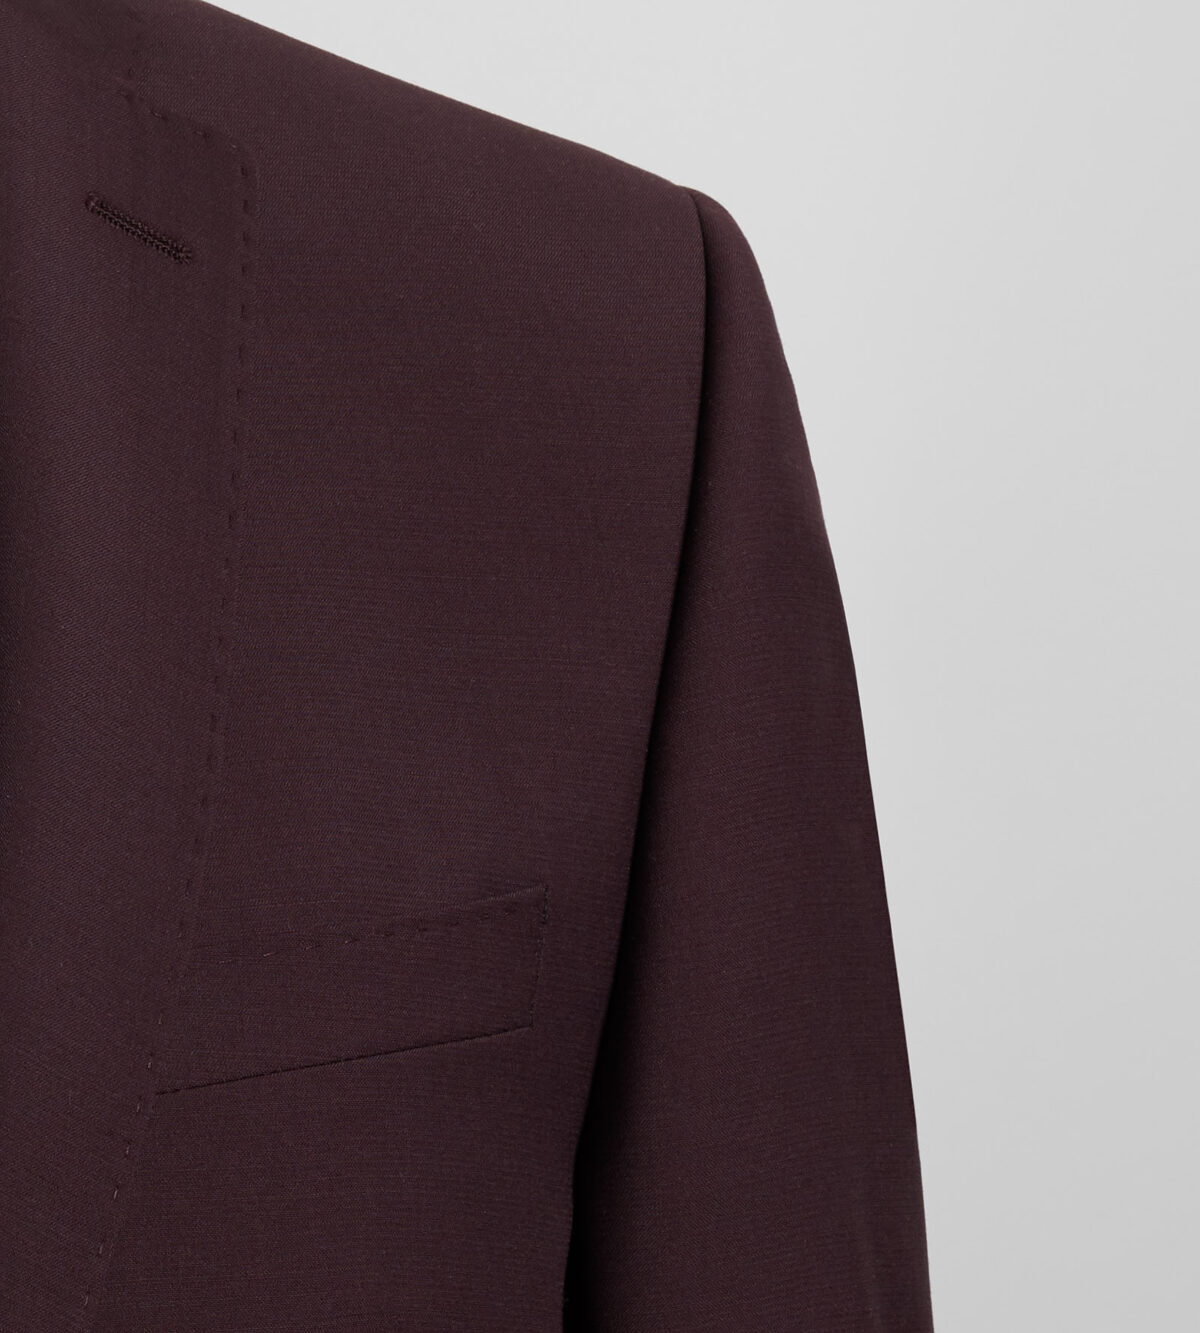 ceremony-bordo-slim-fit-eskuvoi-oltony-robby-laurent-1100968-62-2